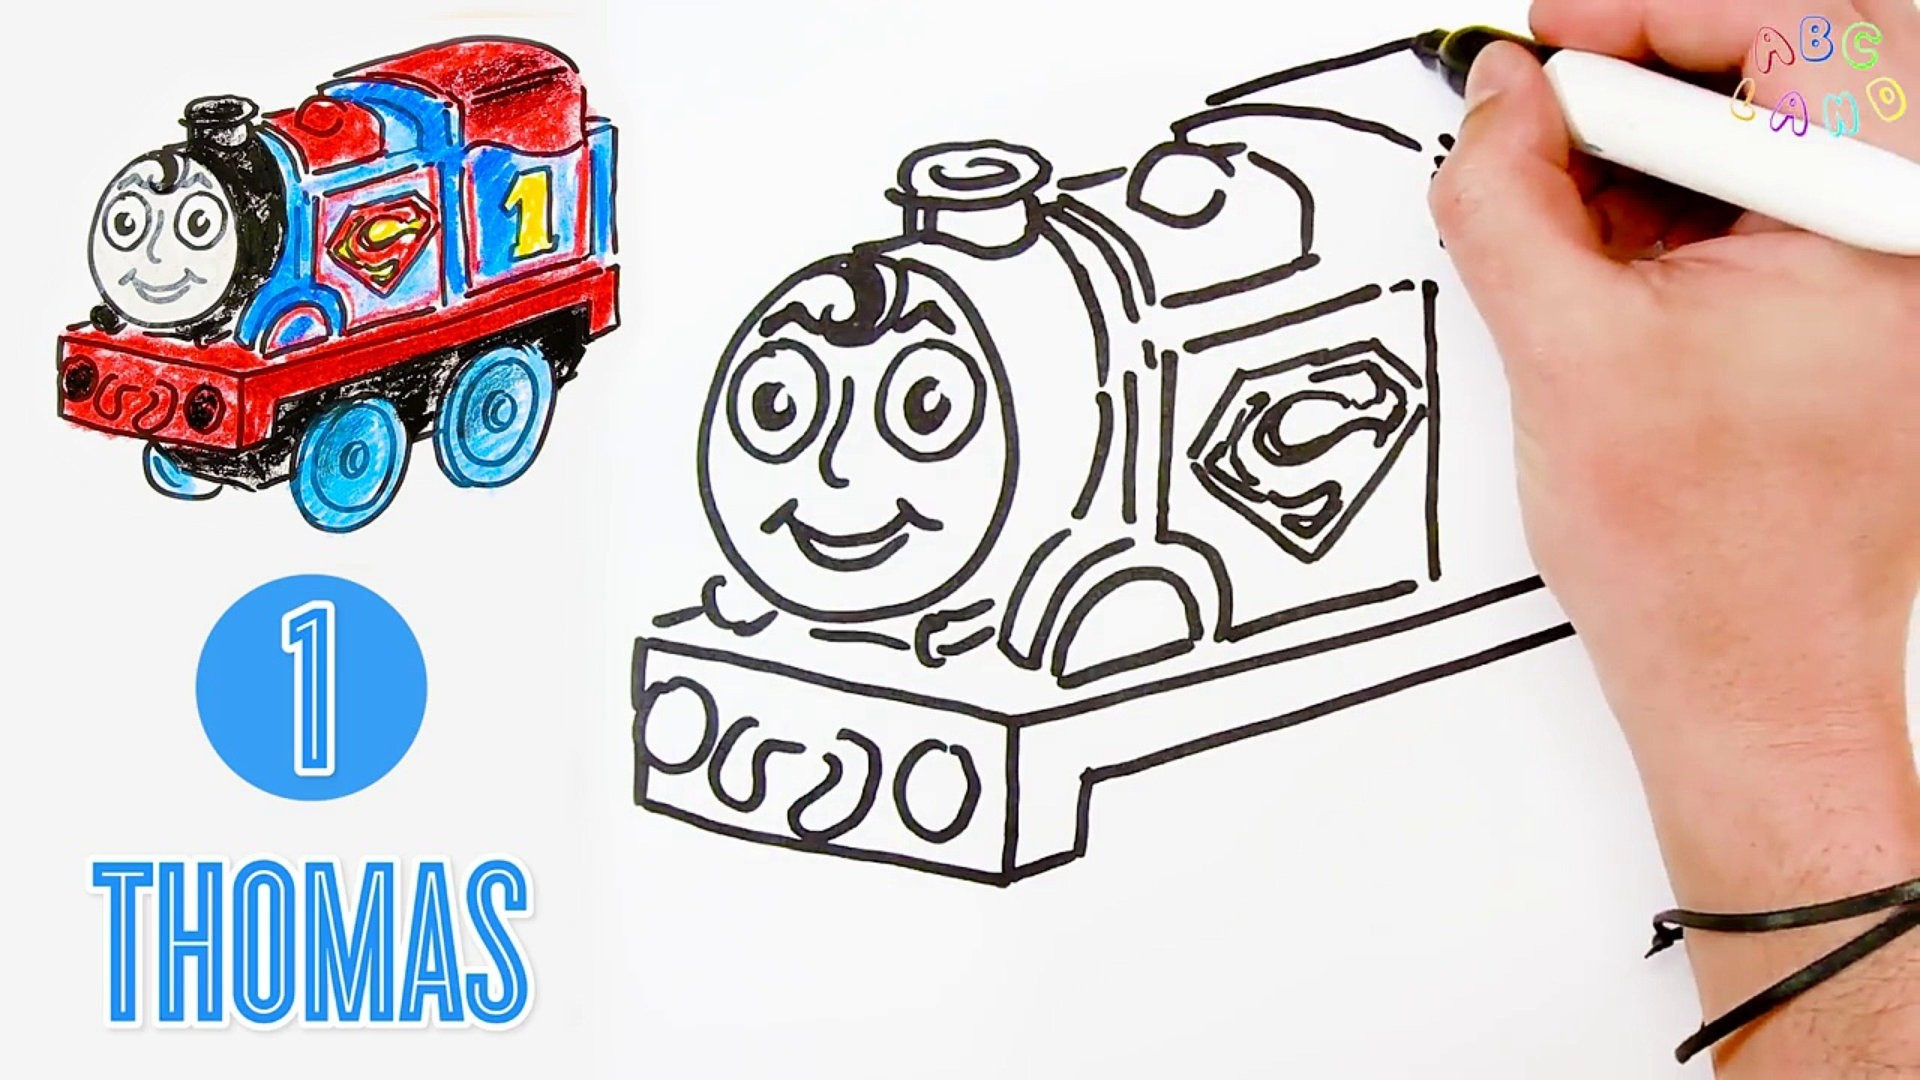 1920x1080  How To Draw Thomas The Train As Superman Thomas And Friends